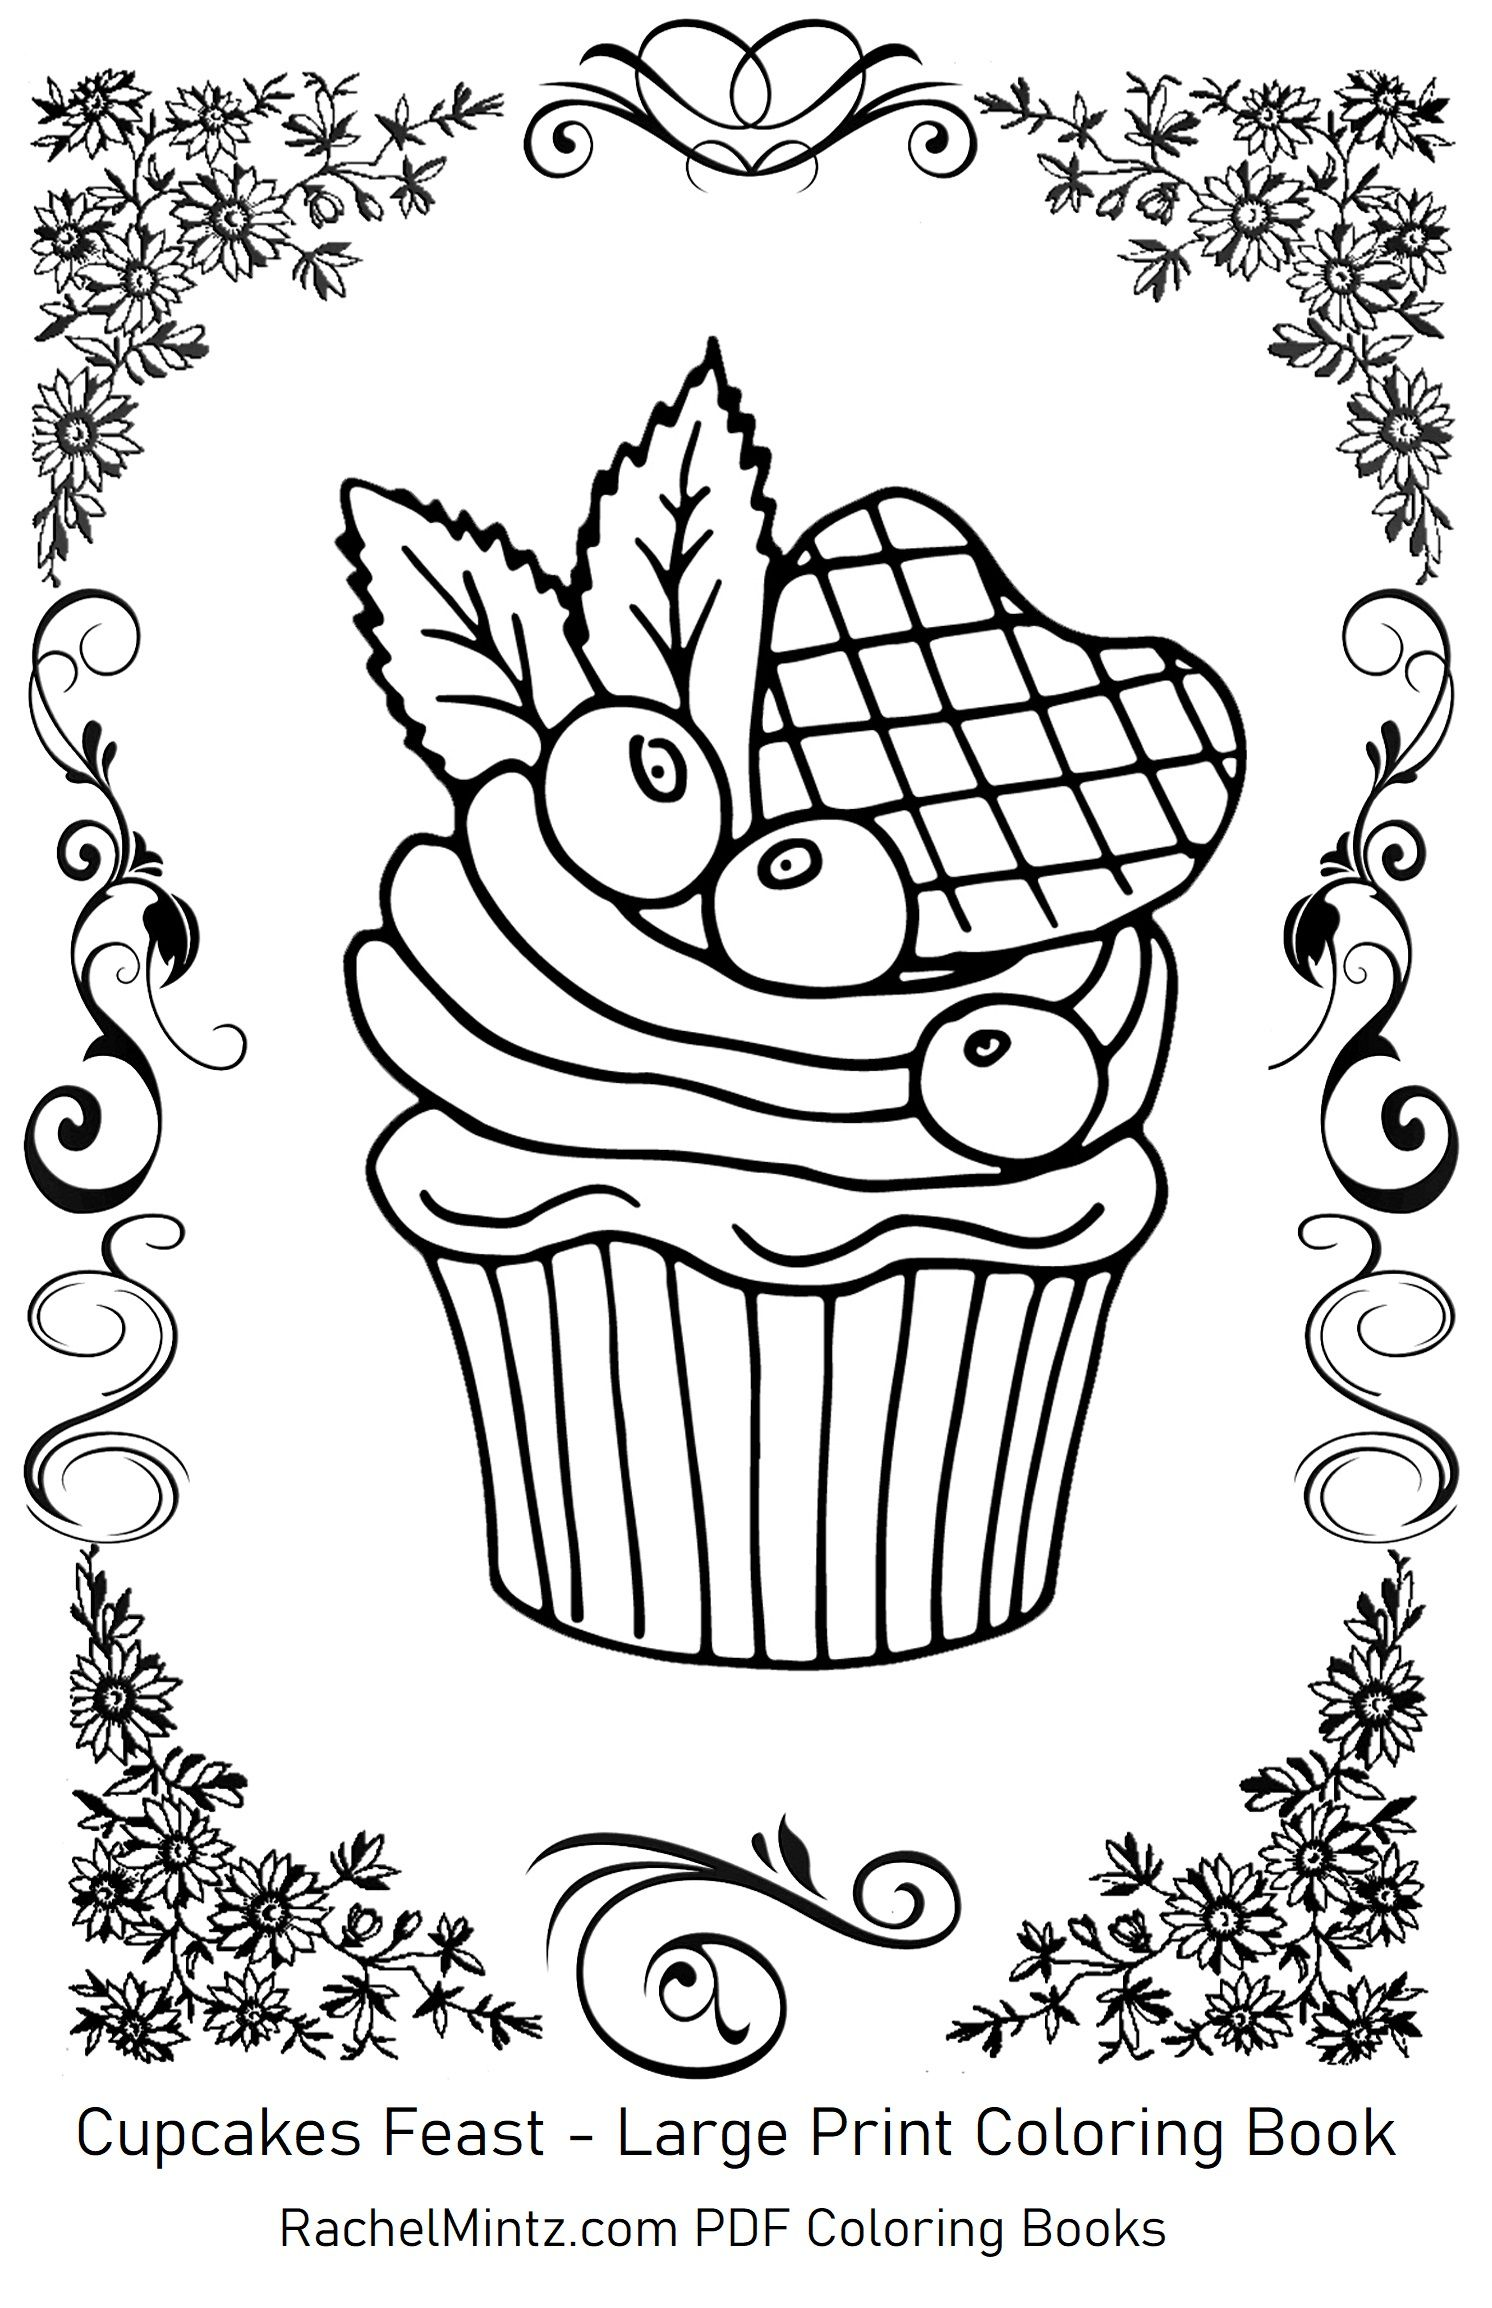 Large Print Cupcakes Coloring Pages In 2020 Coloring Books Cupcake Coloring Pages Large Prints